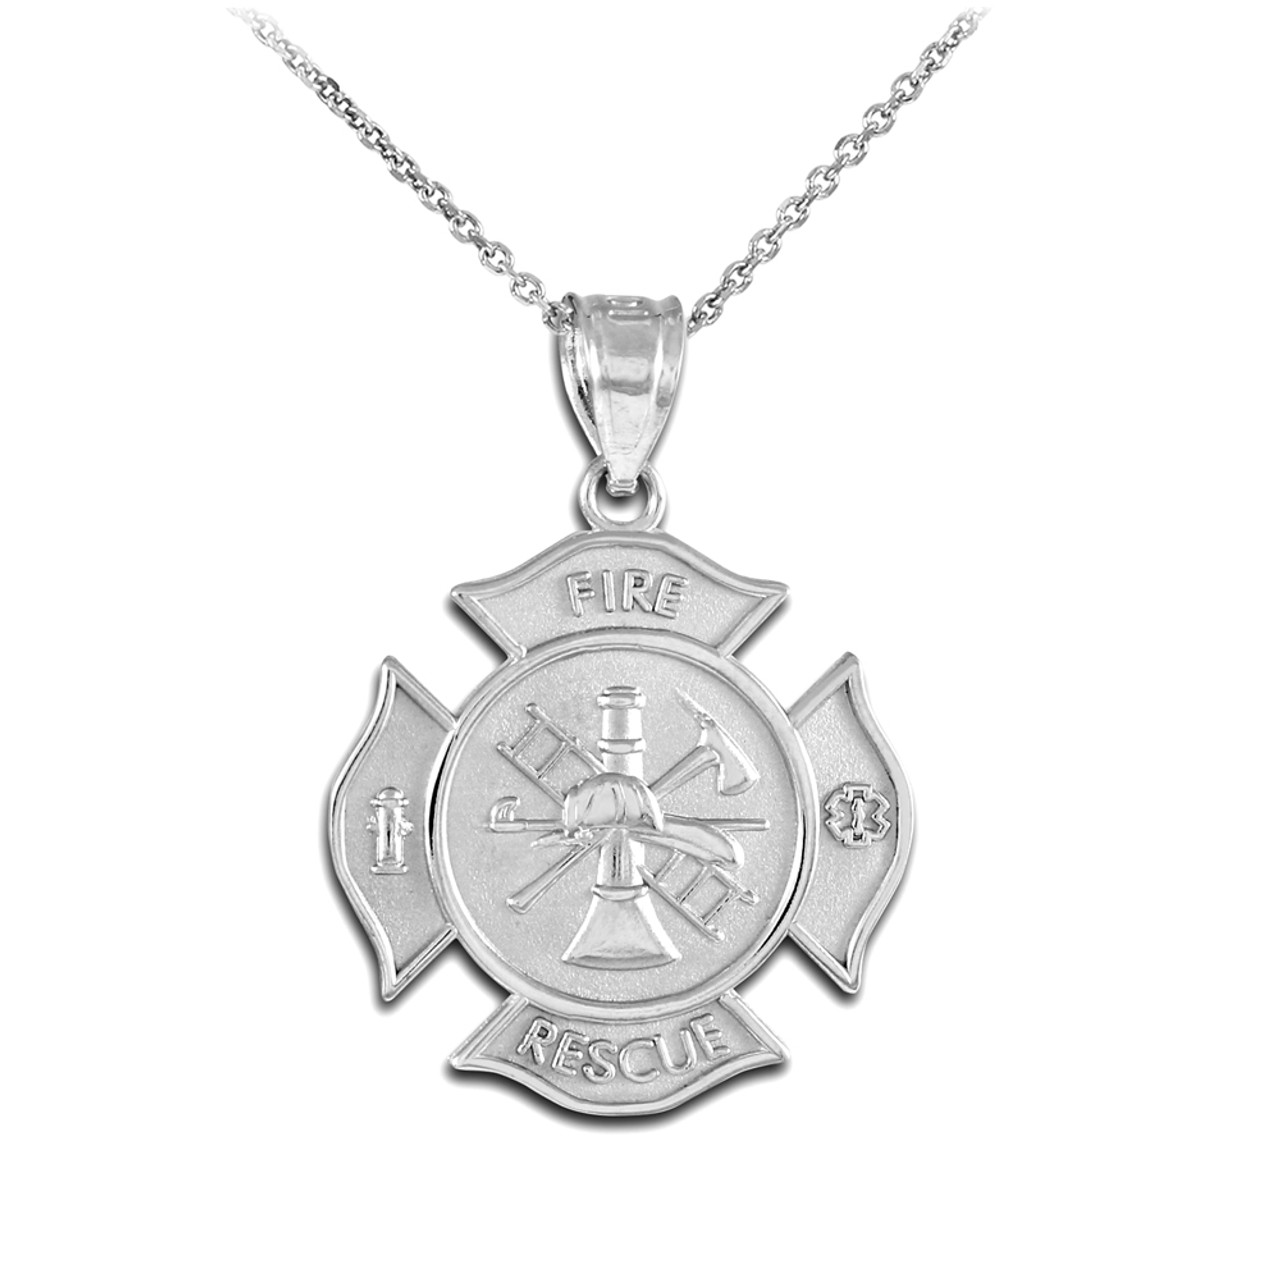 wife htm our pendant firefighter necklace cross firefighters charm crystal p maltese s